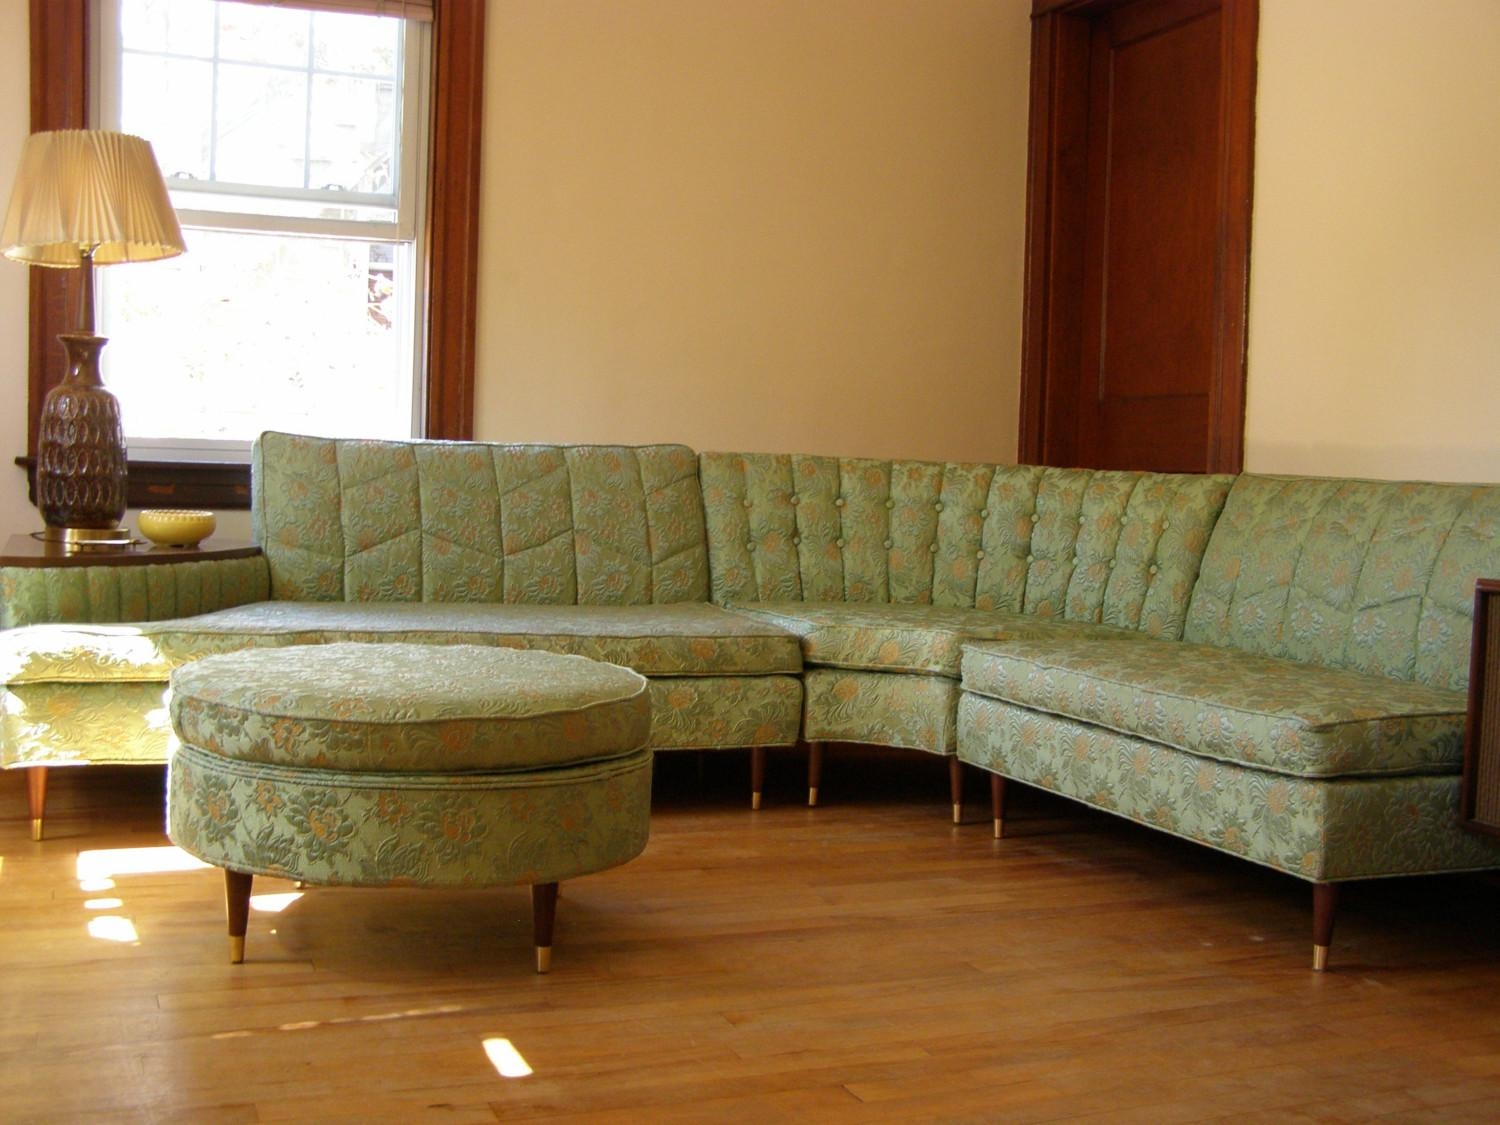 Funky Sofas For Sale 74 With Funky Sofas For Sale – Fjellkjeden For Funky Sofas For Sale (View 10 of 20)